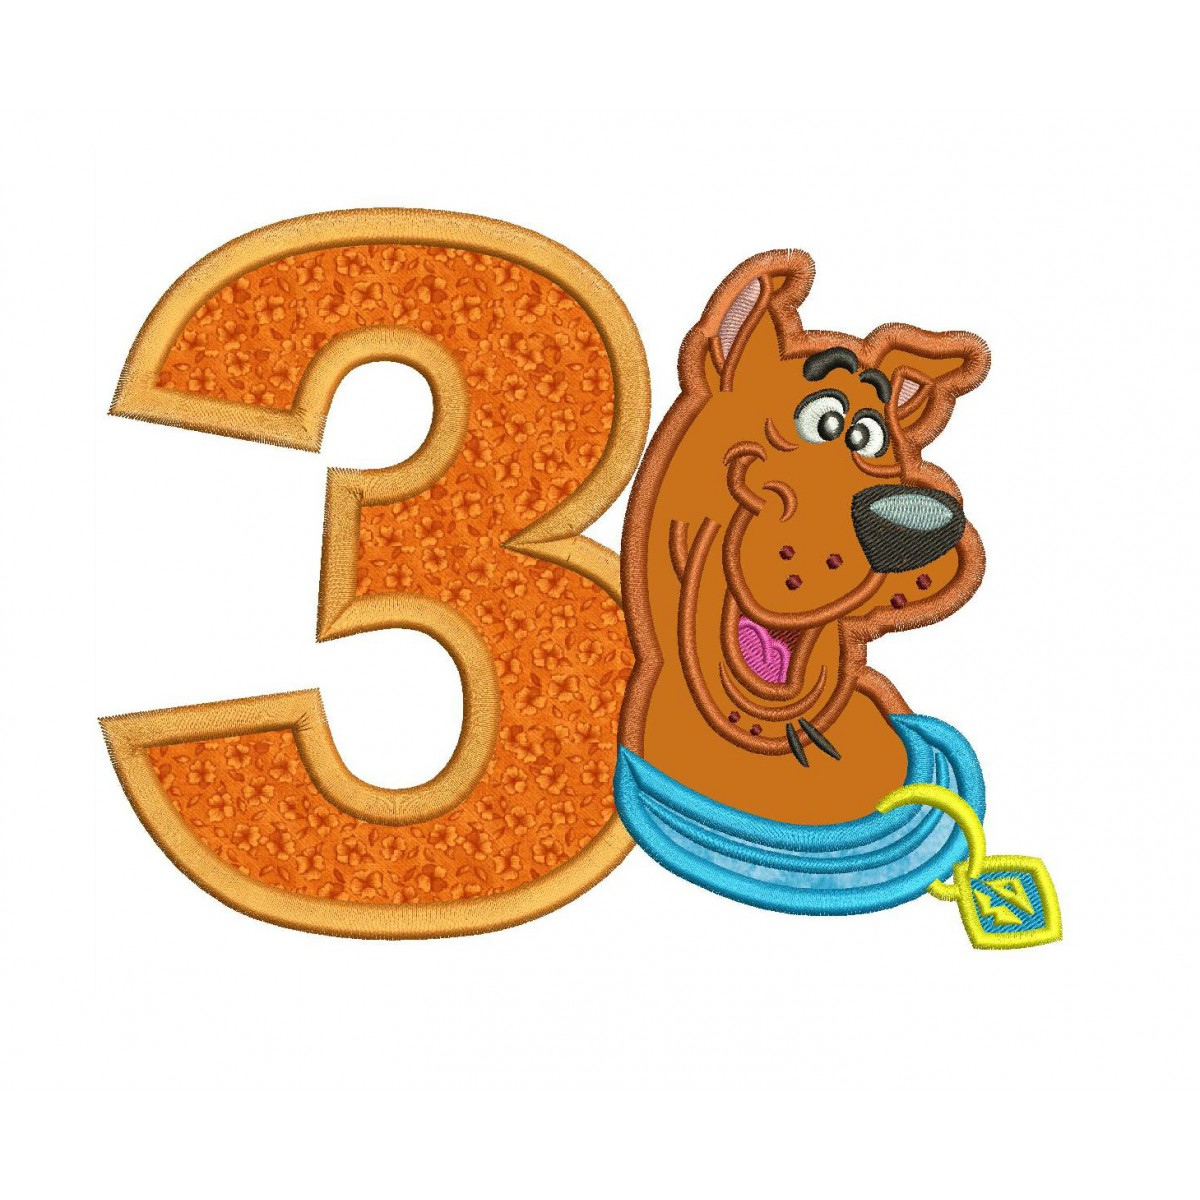 Scooby Doo 3rd Birthday Applique Design